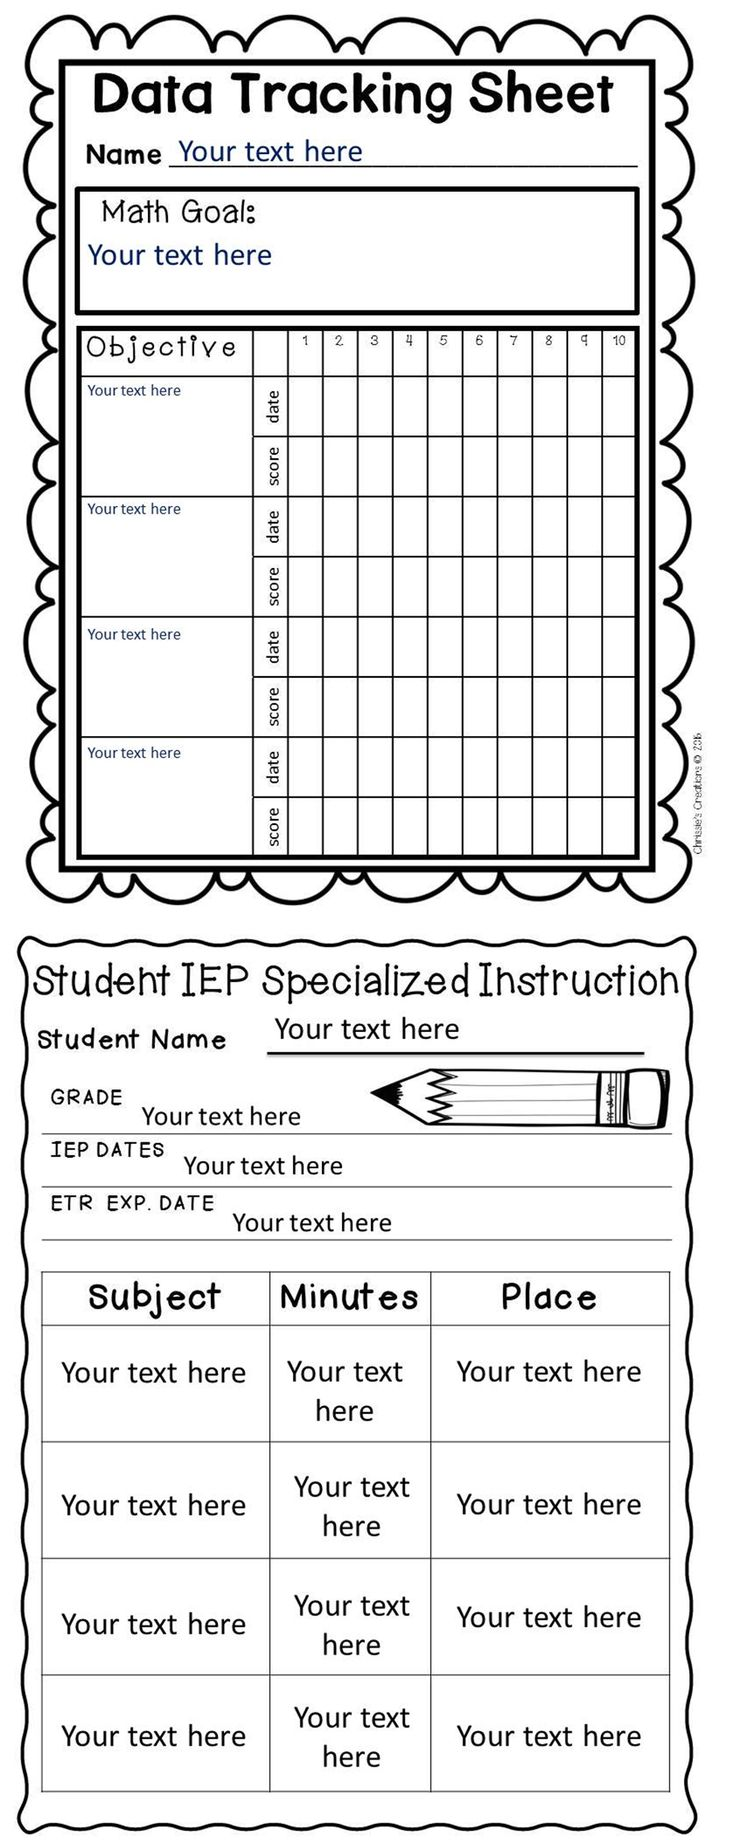 Special Education Forms make my job as an intervention specialist so much easier and organized.  With all of the paperwork required for IEP's,  progress monitoring, RTI interventions, I like to keep everything in one safe and organized place.  Check out the products in Chrissie's Creations store on TpT for more details.